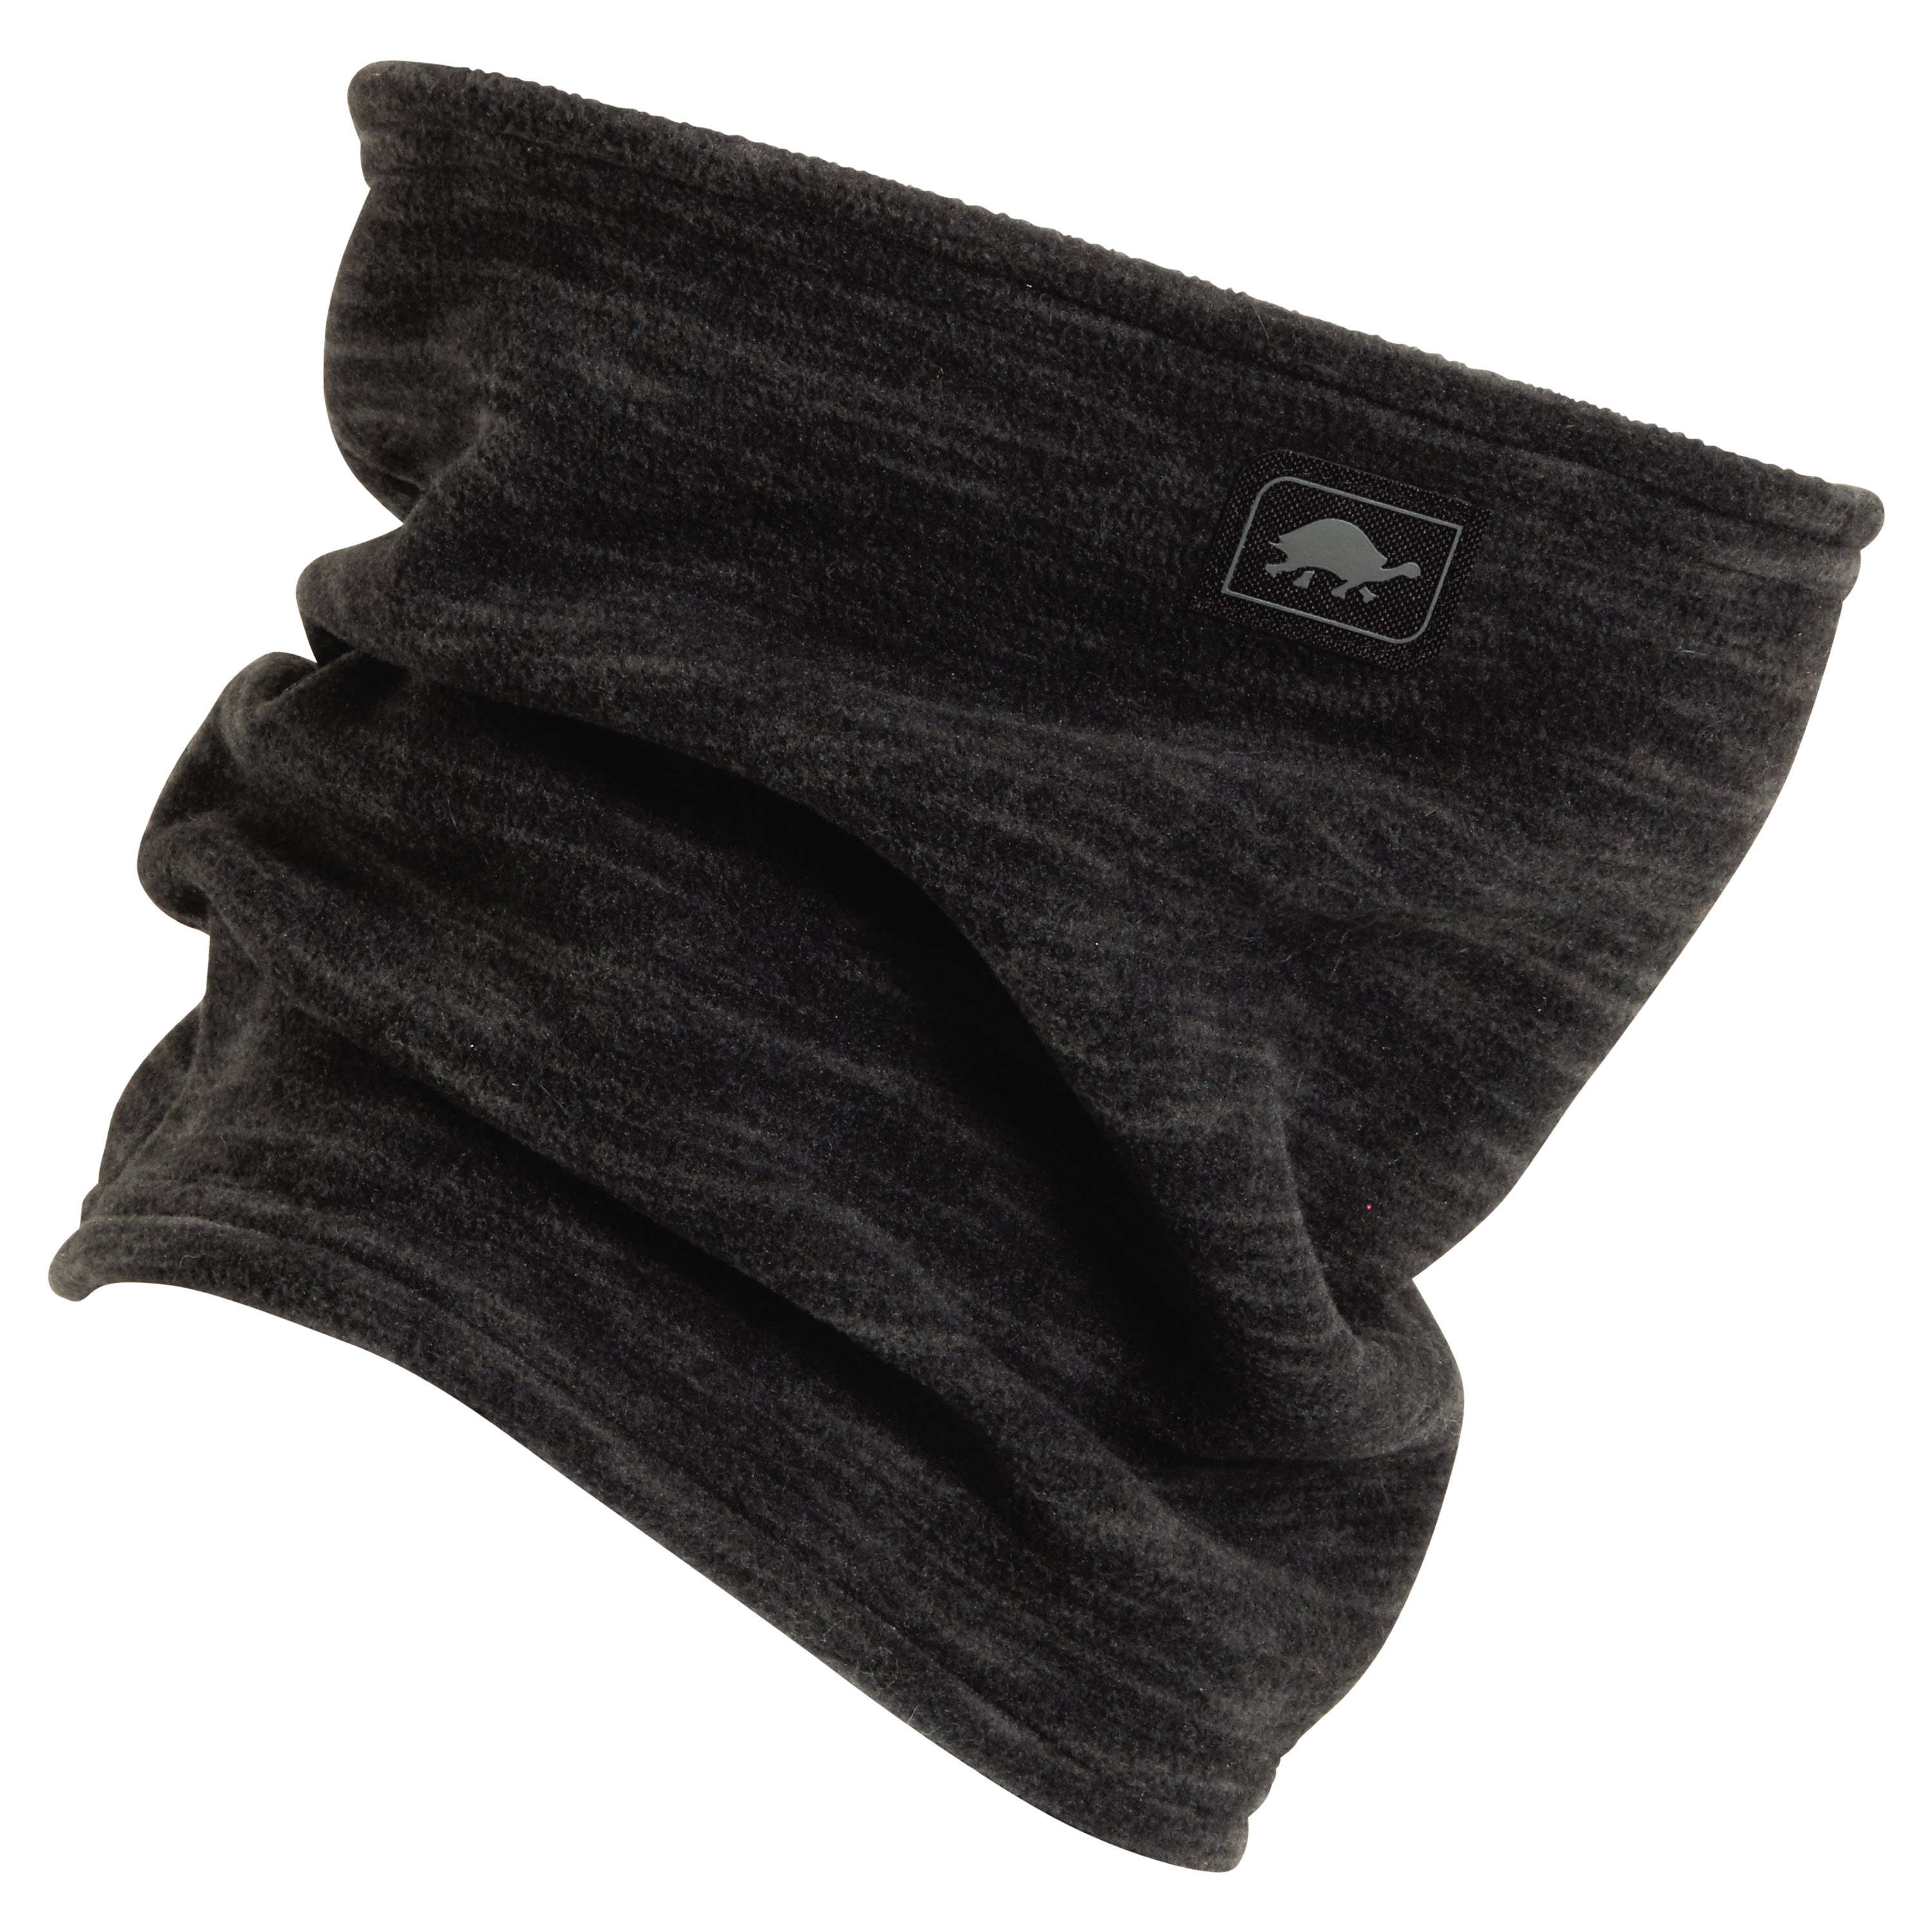 0fde9aee759 Turtle Fur Midweight Polartec Thermal Pro Stria Fleece Neck Warmer ...